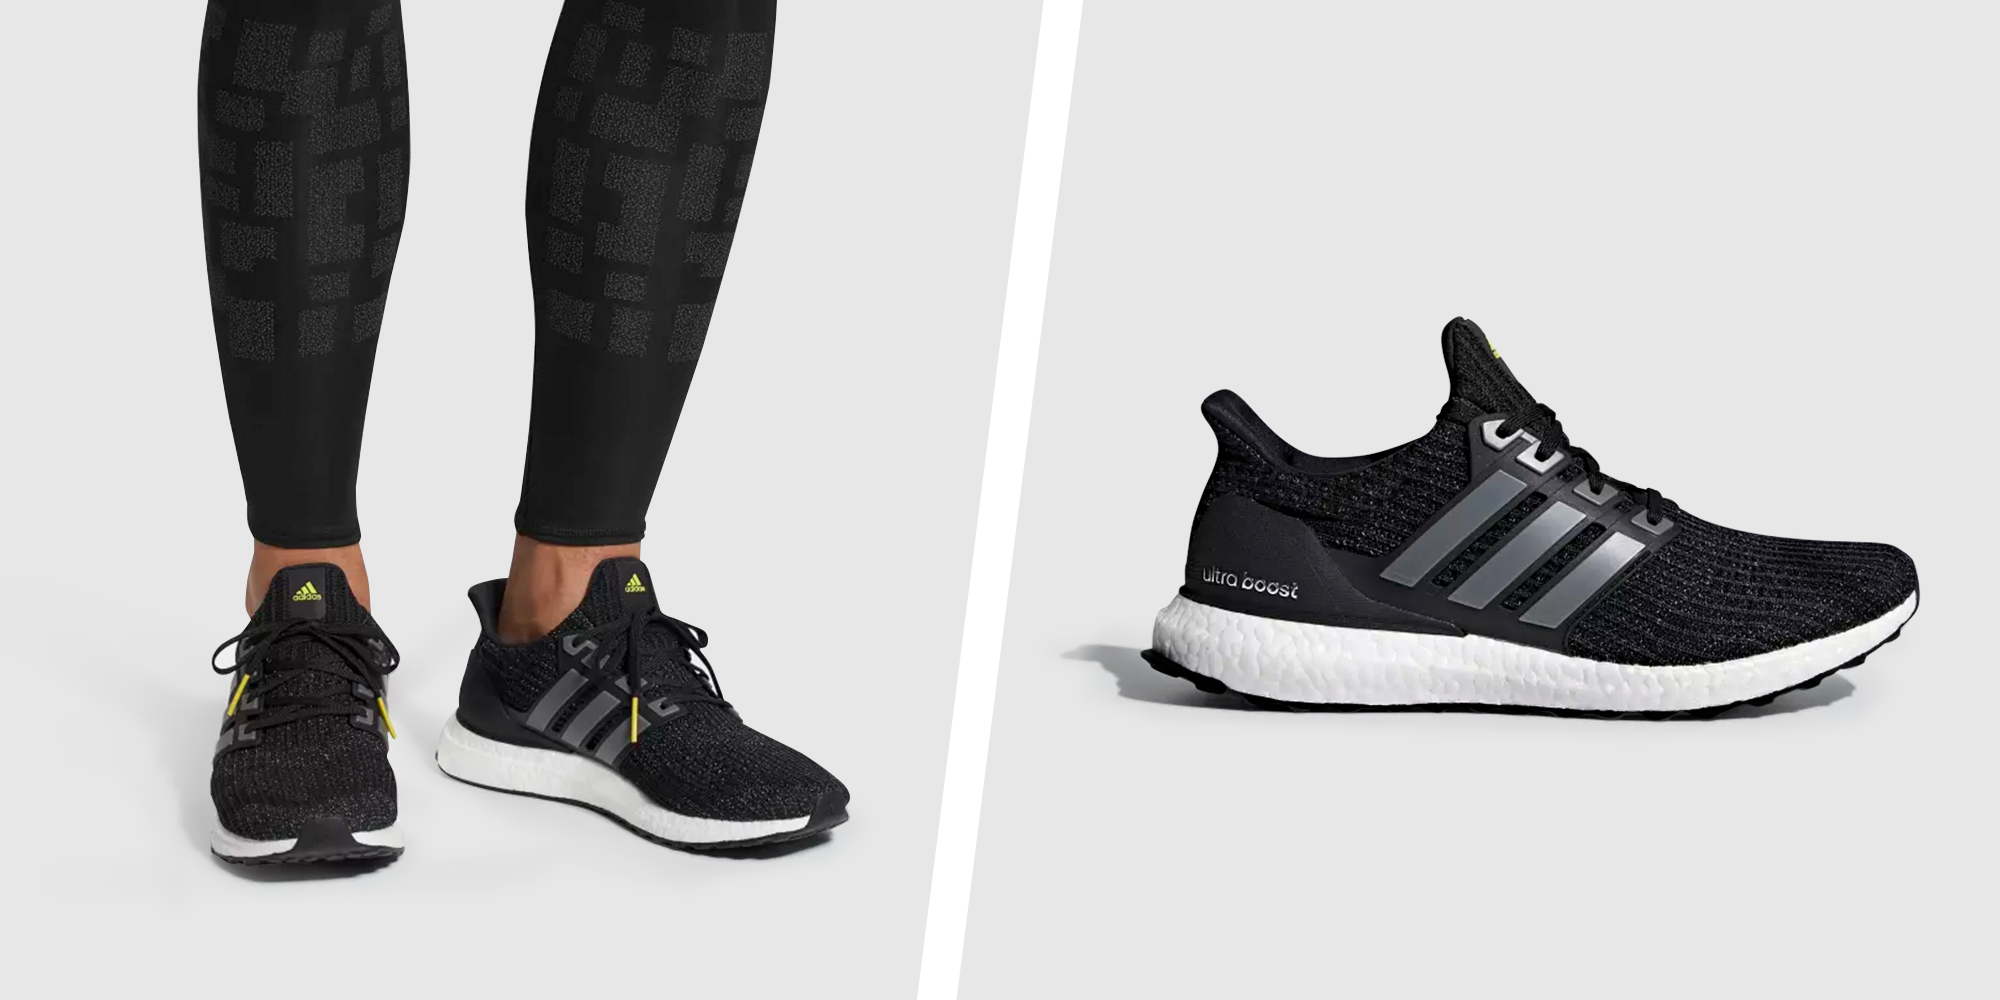 Adidas' Best Shoes for Guys Are Currently 50% Off